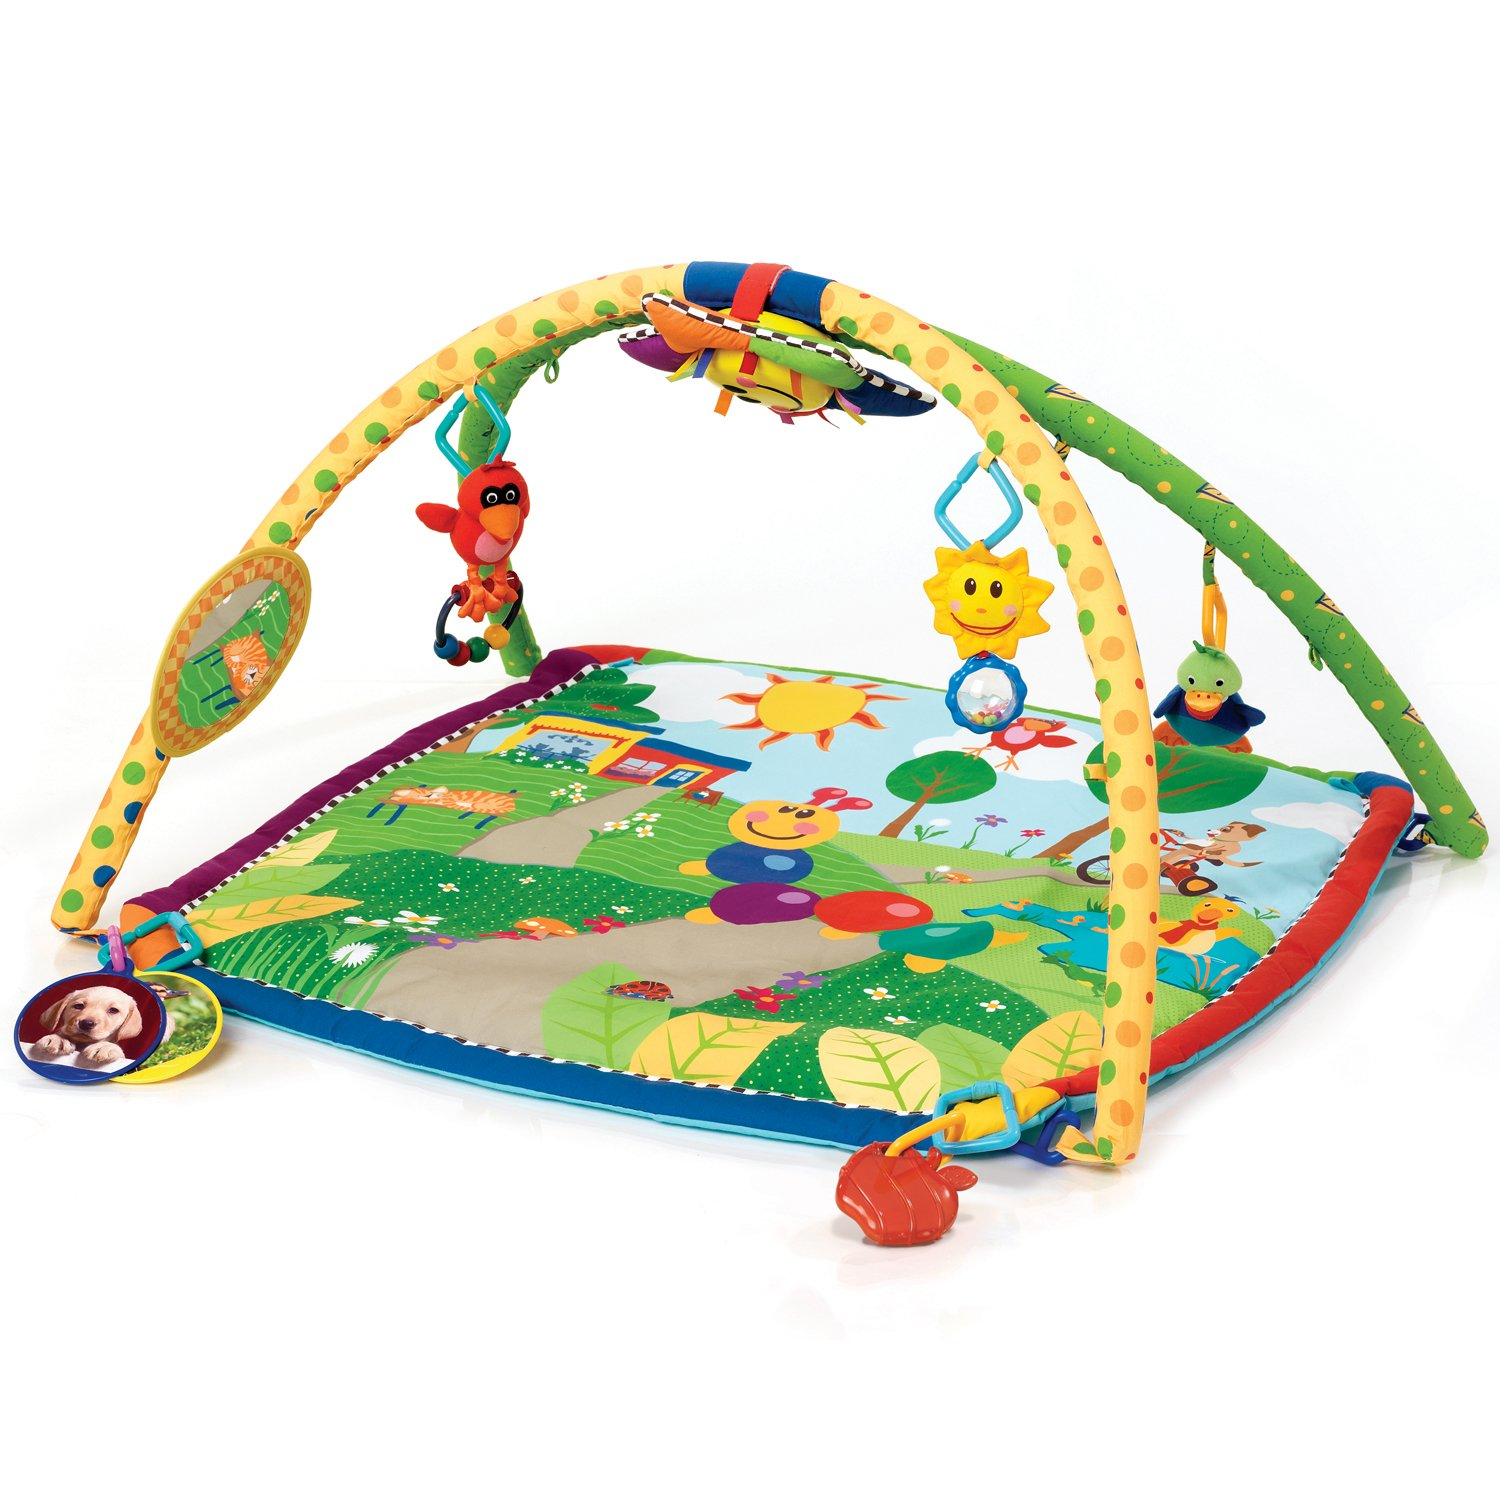 ideas and play toys inspiration prod floor pics flooring floors exlrg gym infant baby amazing children